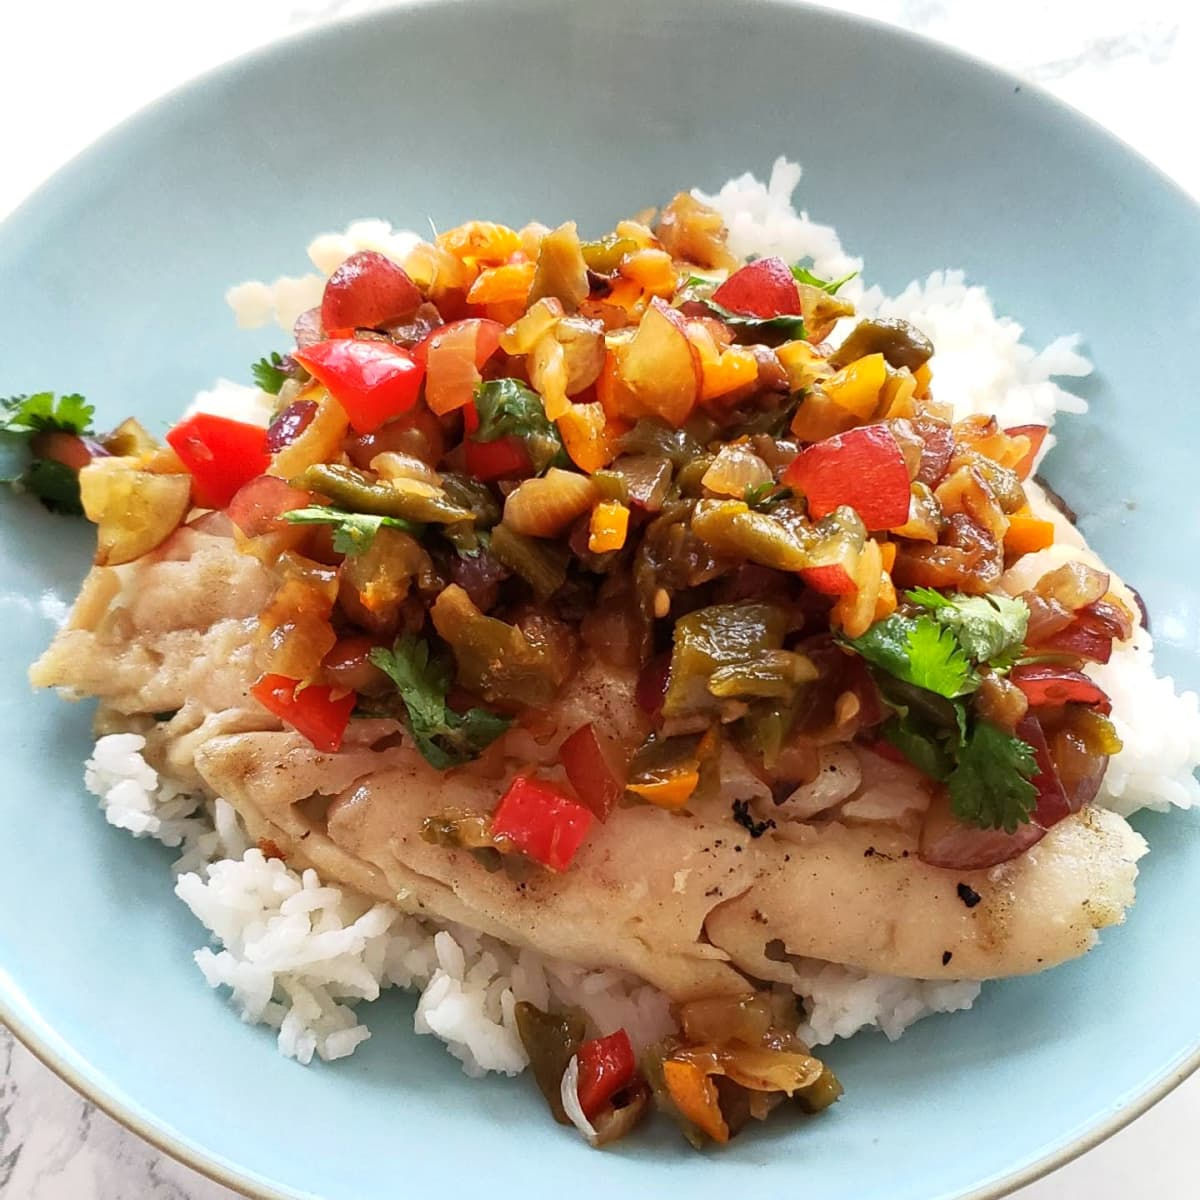 Hatch Chile Grape Salsa atop fish and rice in a light blue bowl